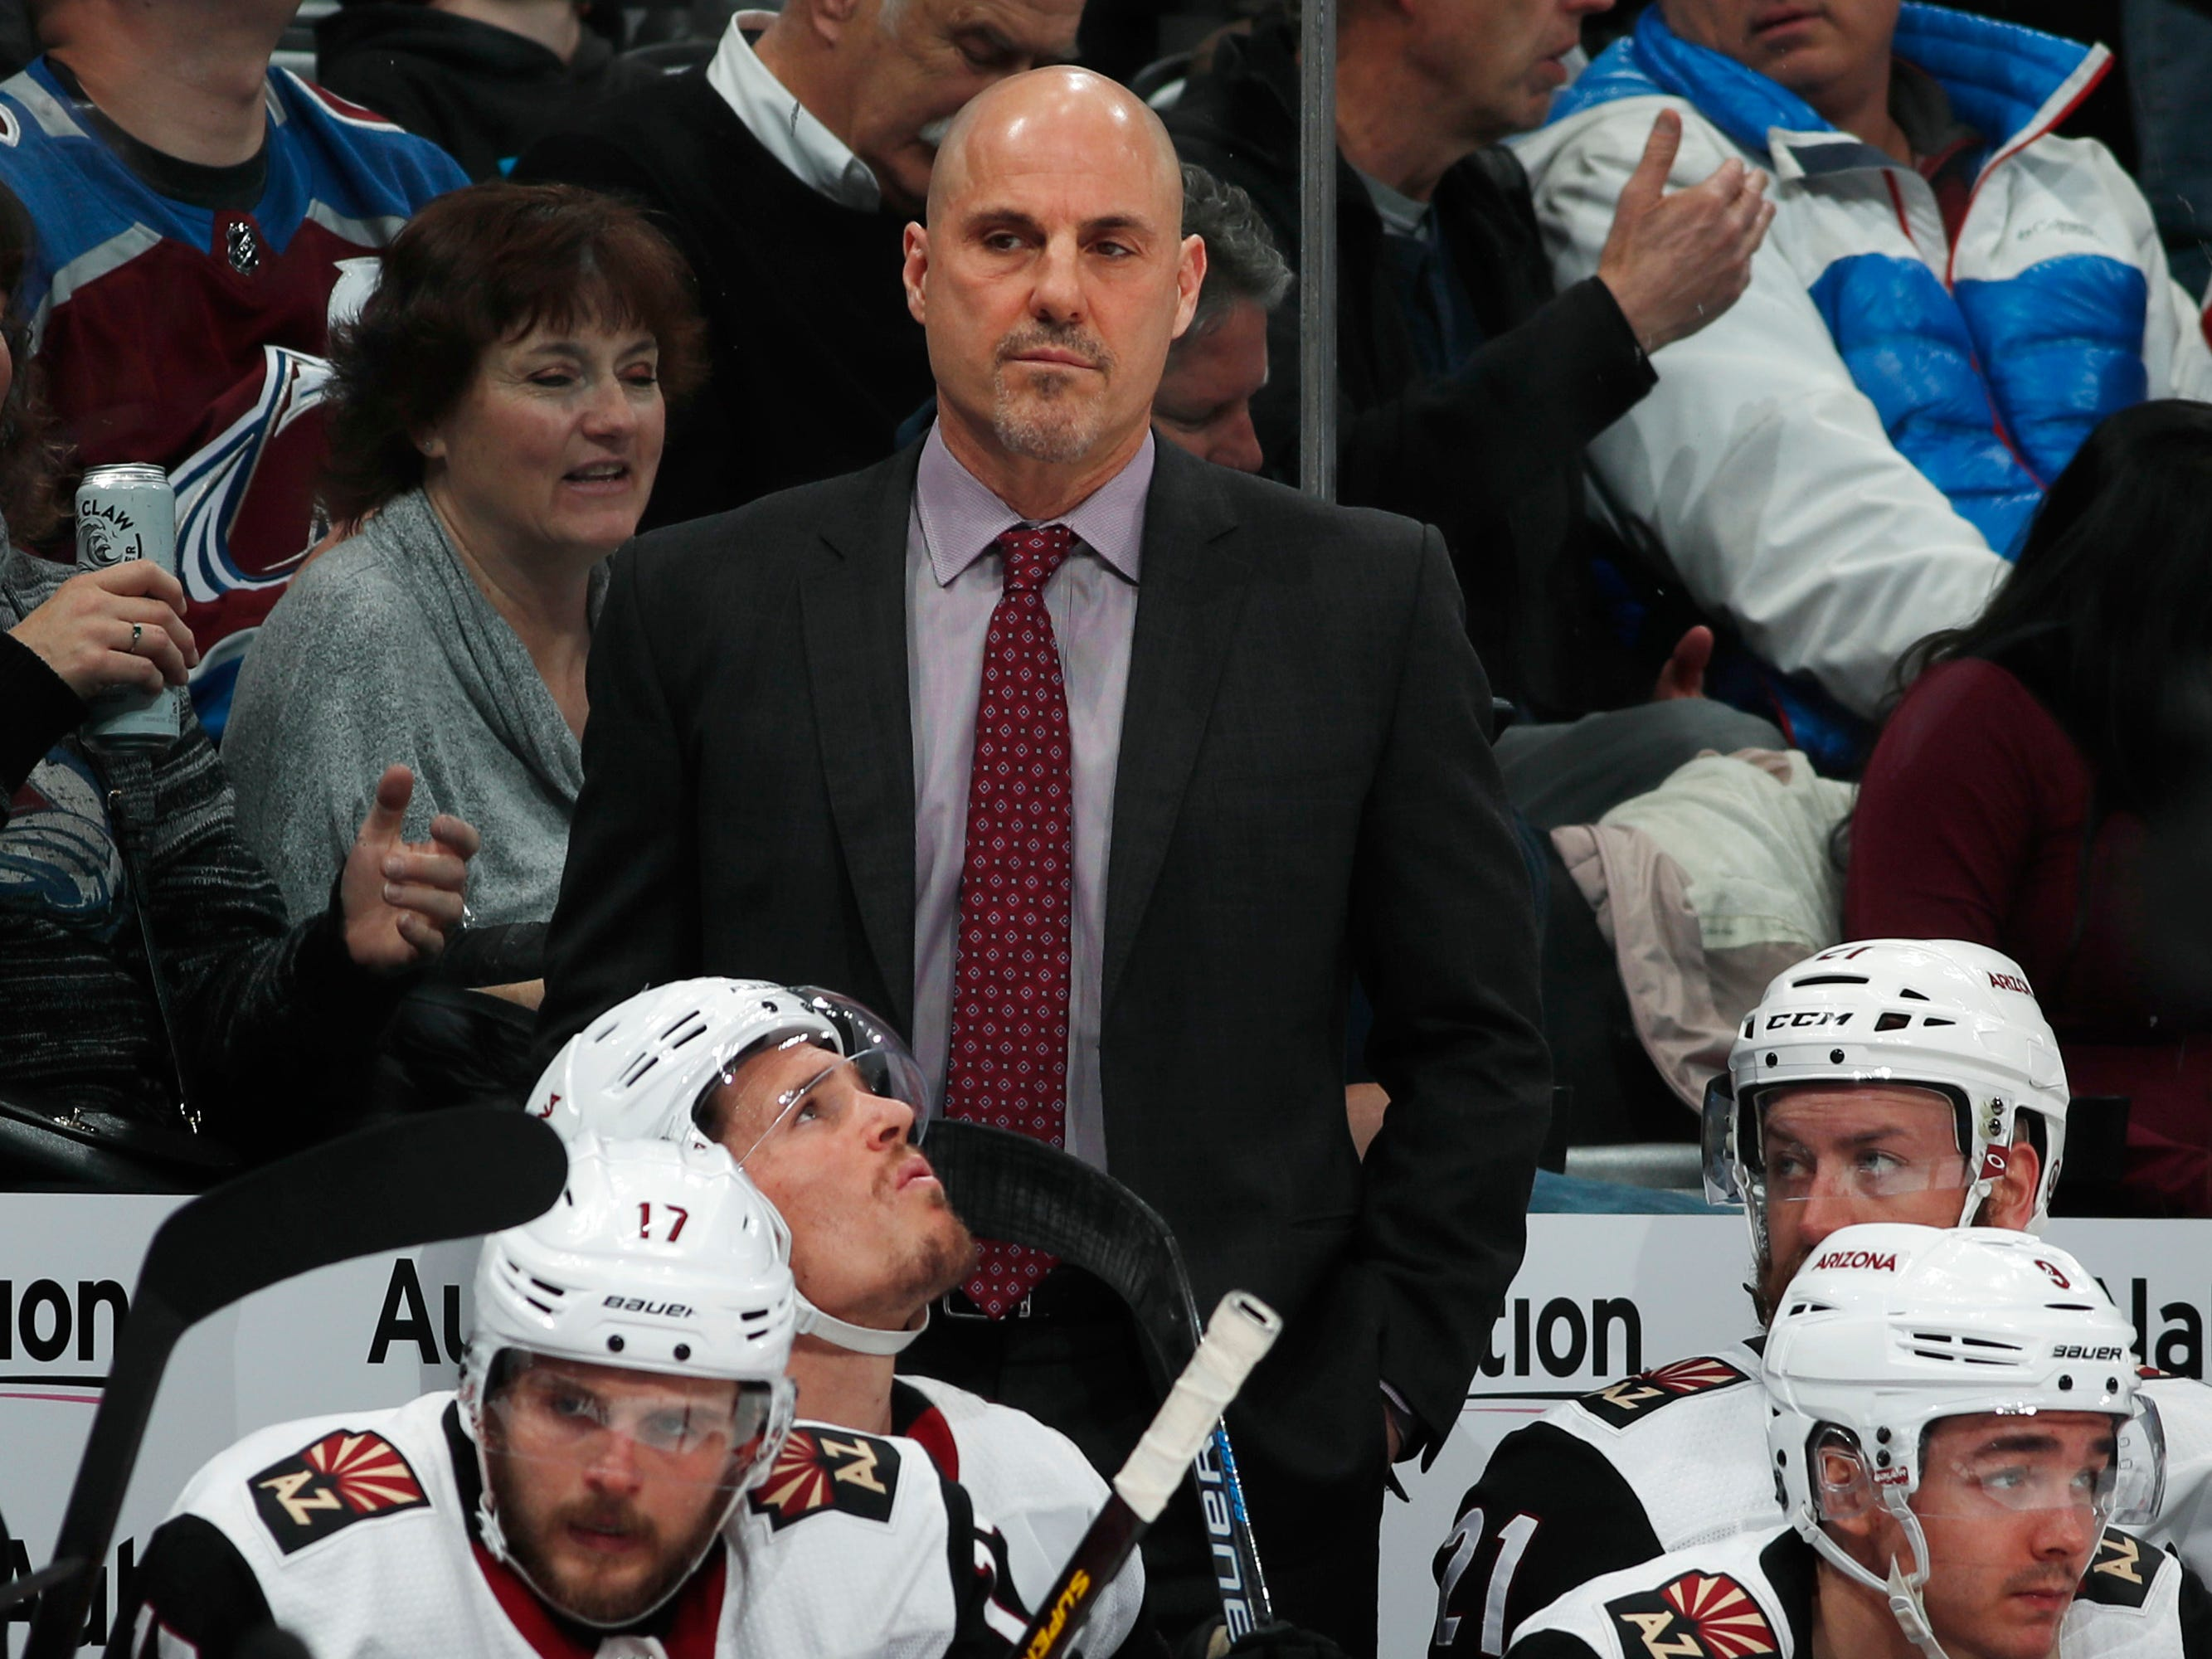 Arizona Coyotes head coach Rick Tocchet, center top, looks on in the second period of an NHL hockey game  against the Colorado Avalanche, Friday, March 29, 2019, in Denver.